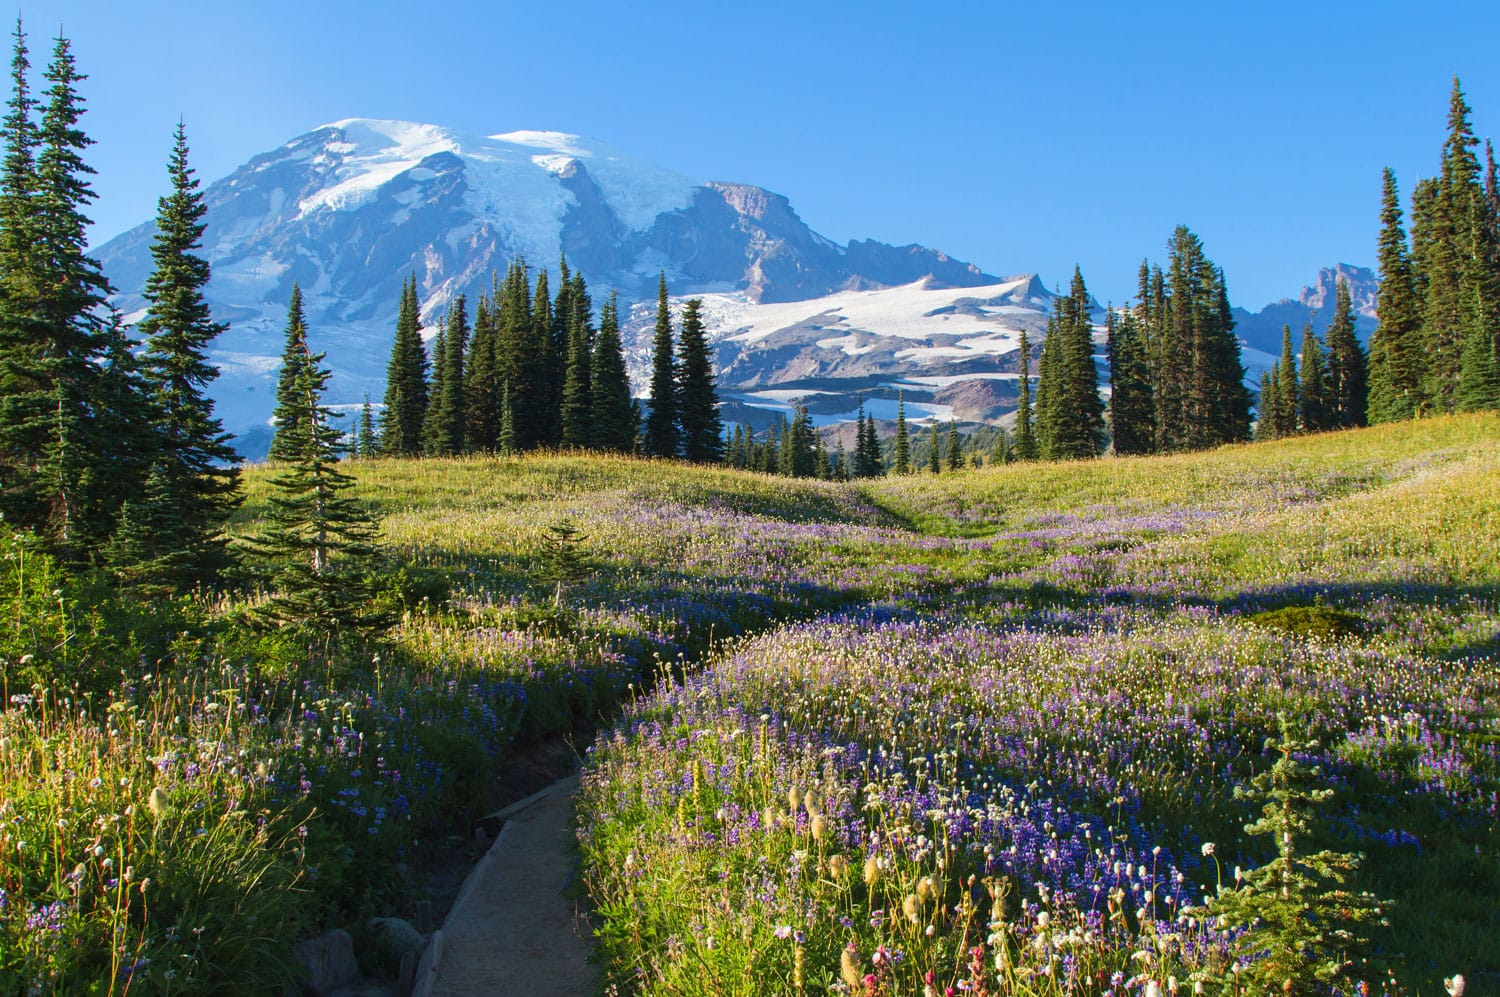 A scenic view of Mount Rainier with wild flowers and lupines growing in the late summer months